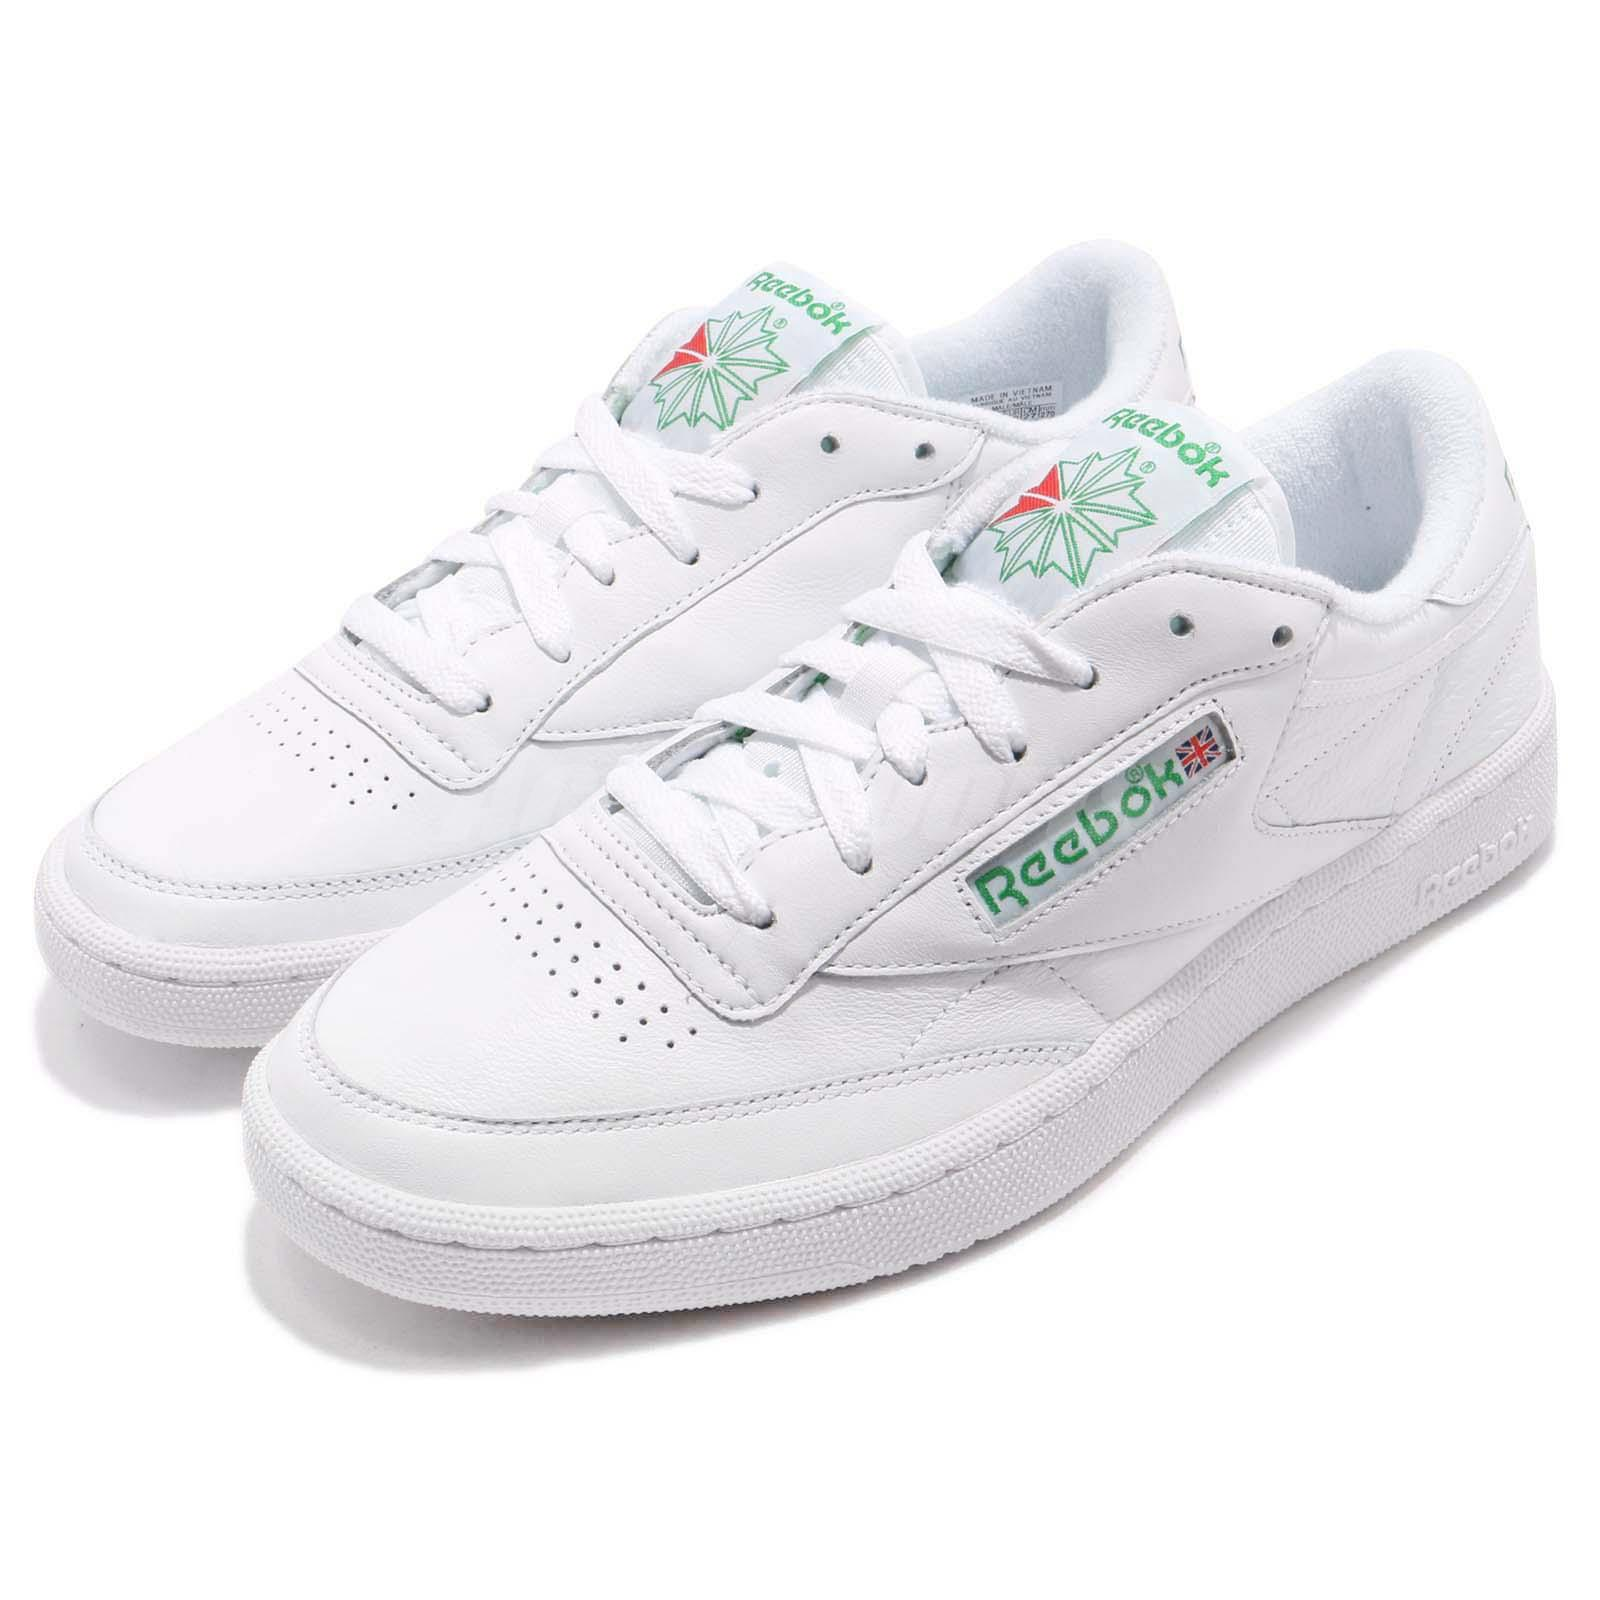 Details about Reebok Classic Club C 85 Archive White Glen Green Men Shoes  Sneakers CN0645 2f2dda133409